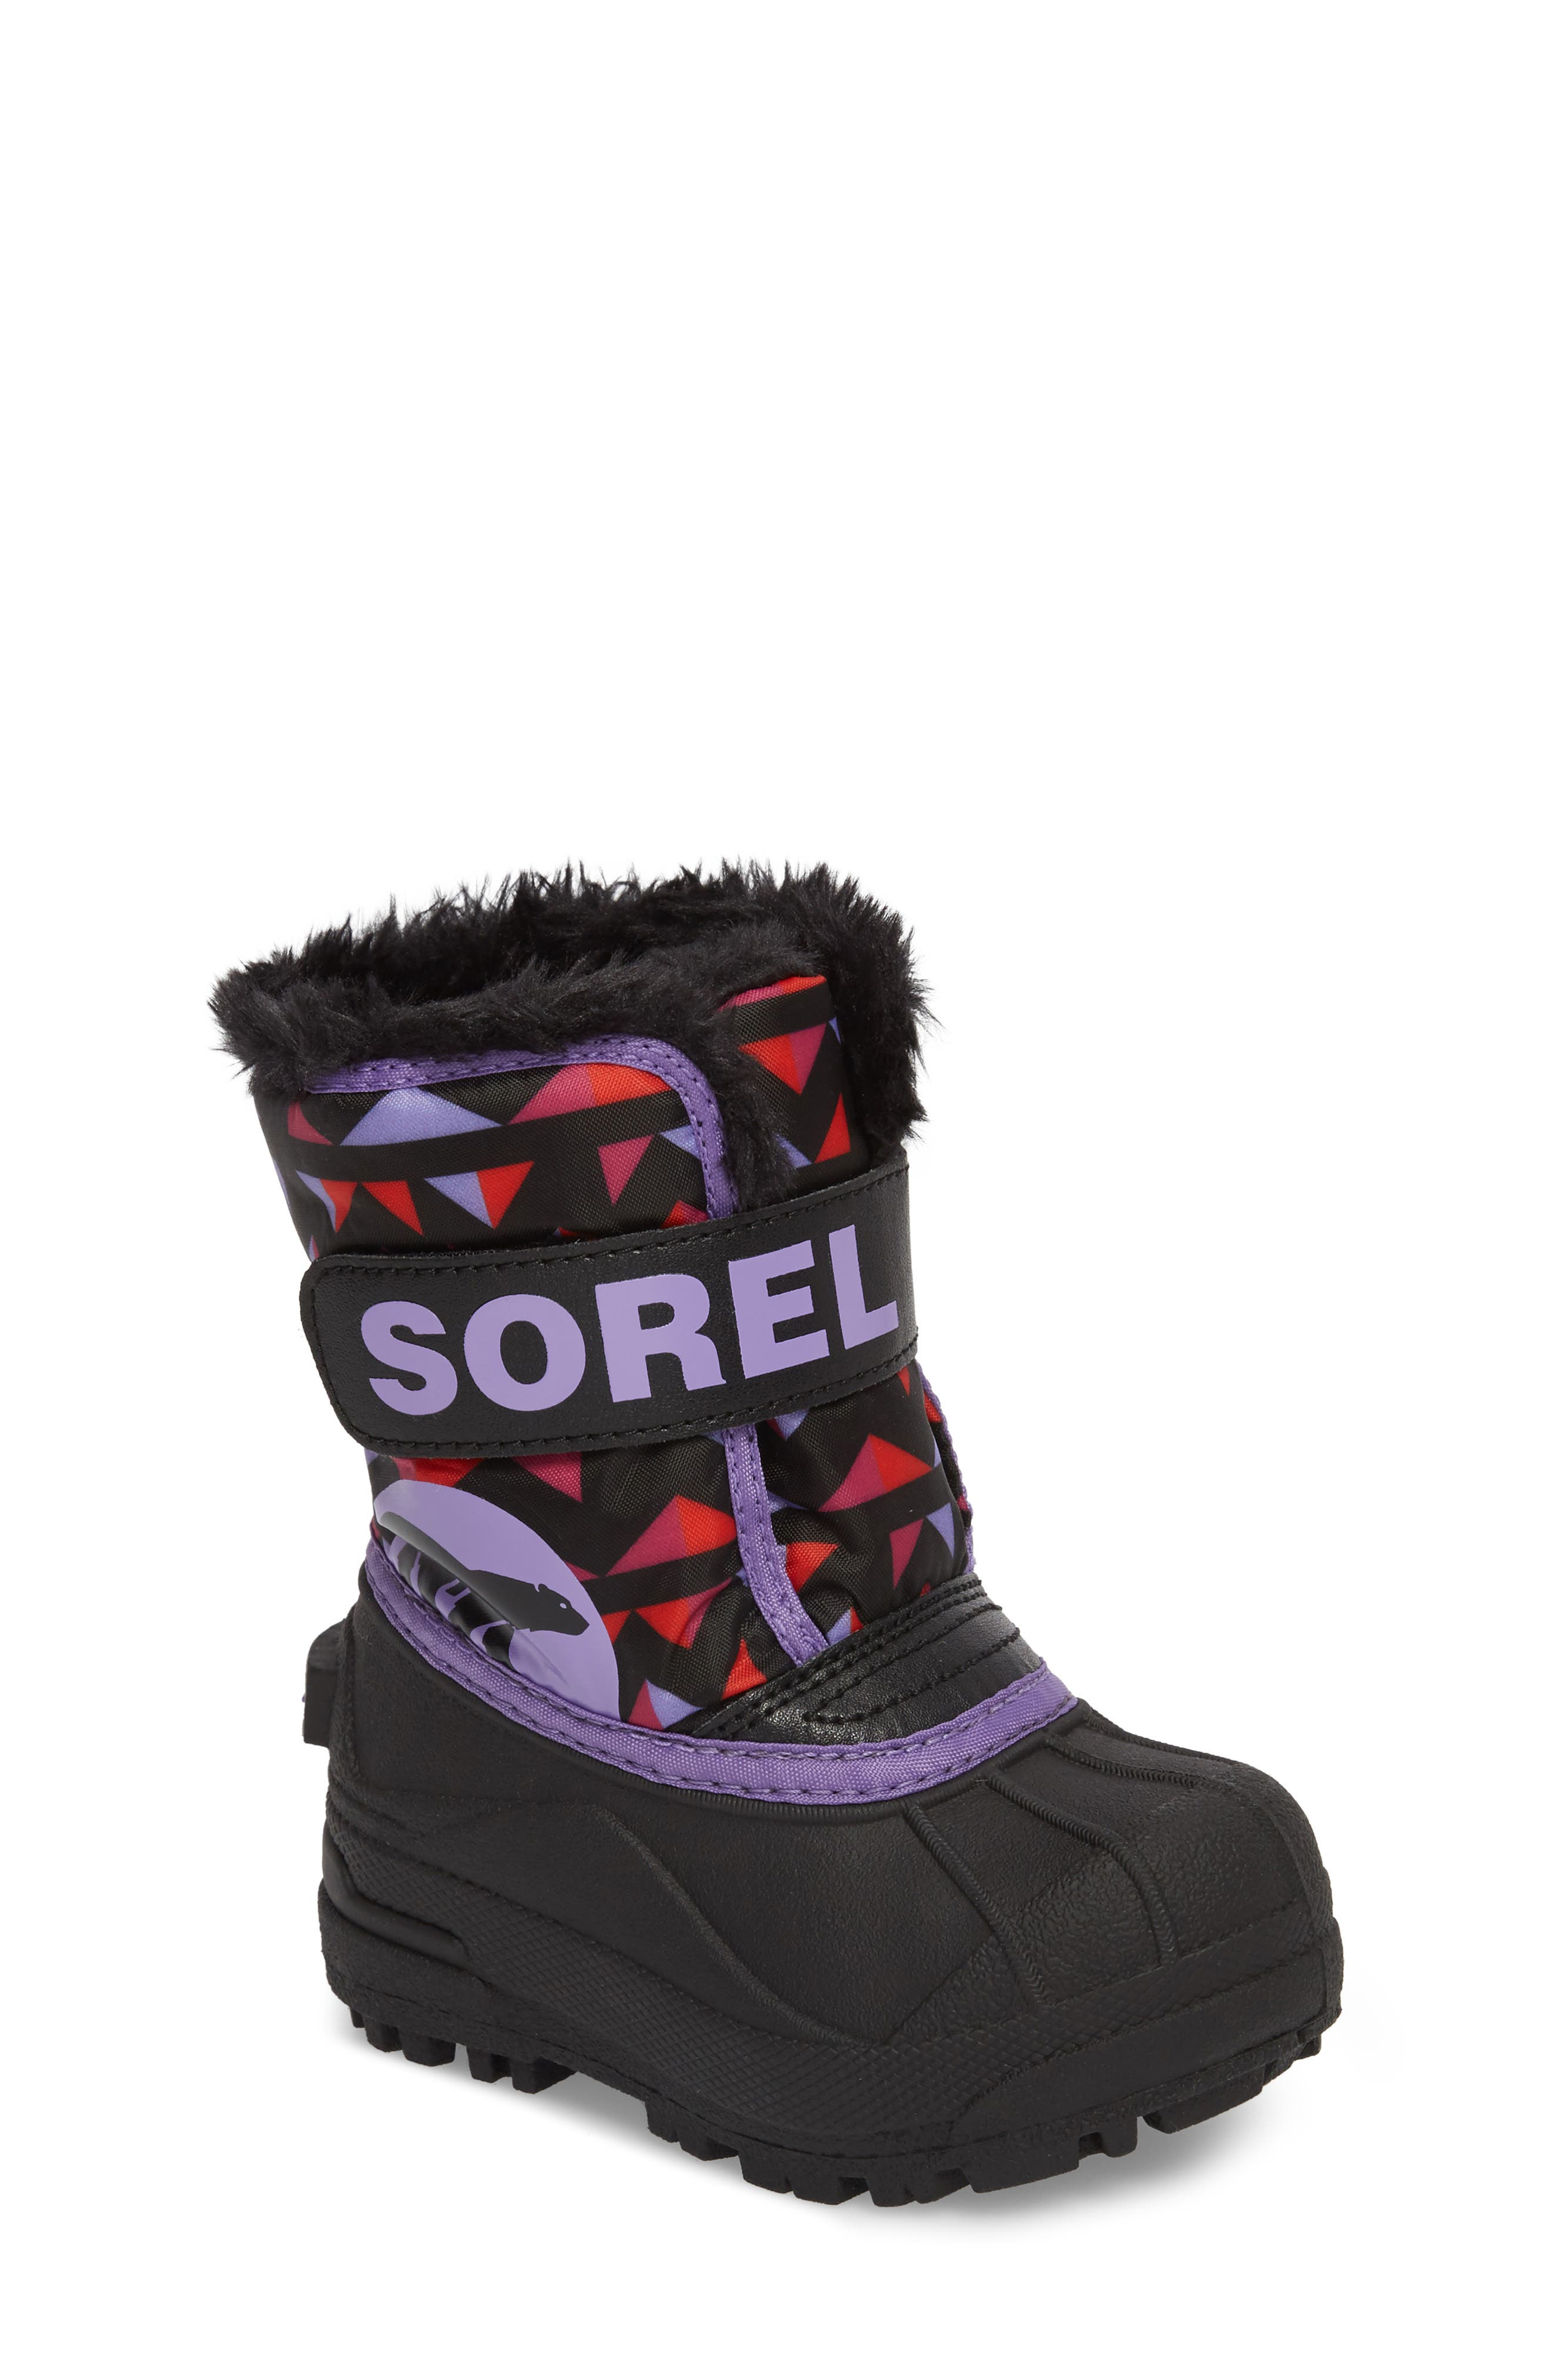 Children's Snow Commander Insulated Waterproof Boot,                             Main thumbnail 1, color,                             Black/ Paisley Purple